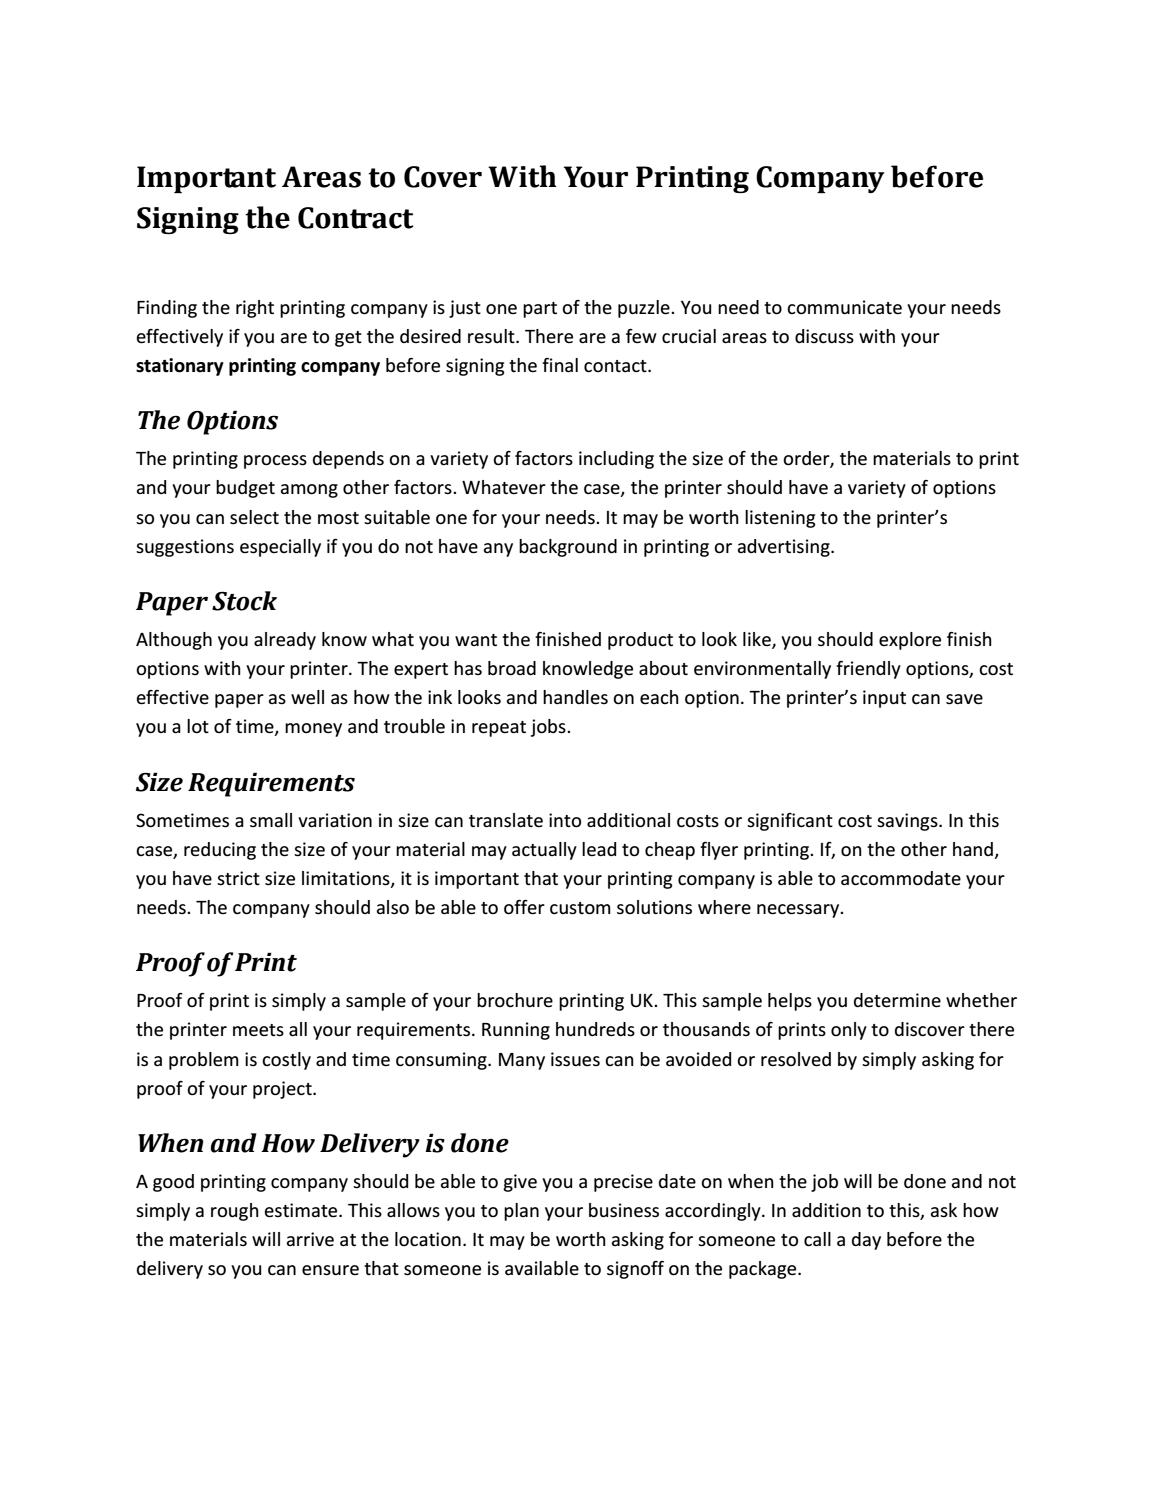 important areas to cover with your printing company before signing